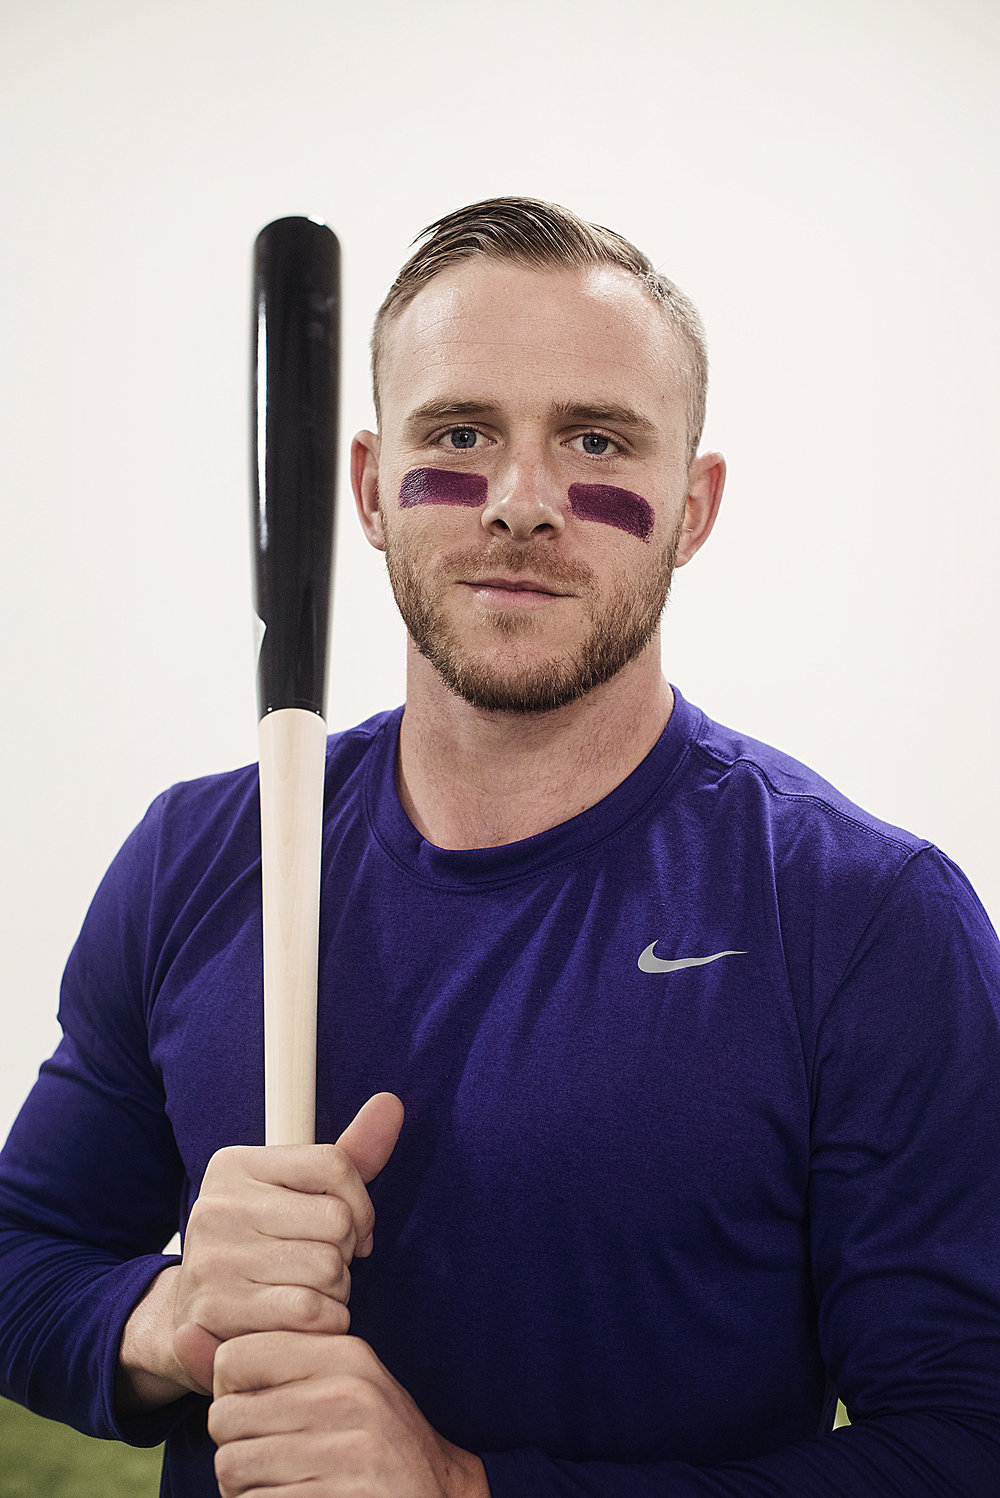 Trevor Story - Pro Baseball Player and Starting ShortstopEnter code